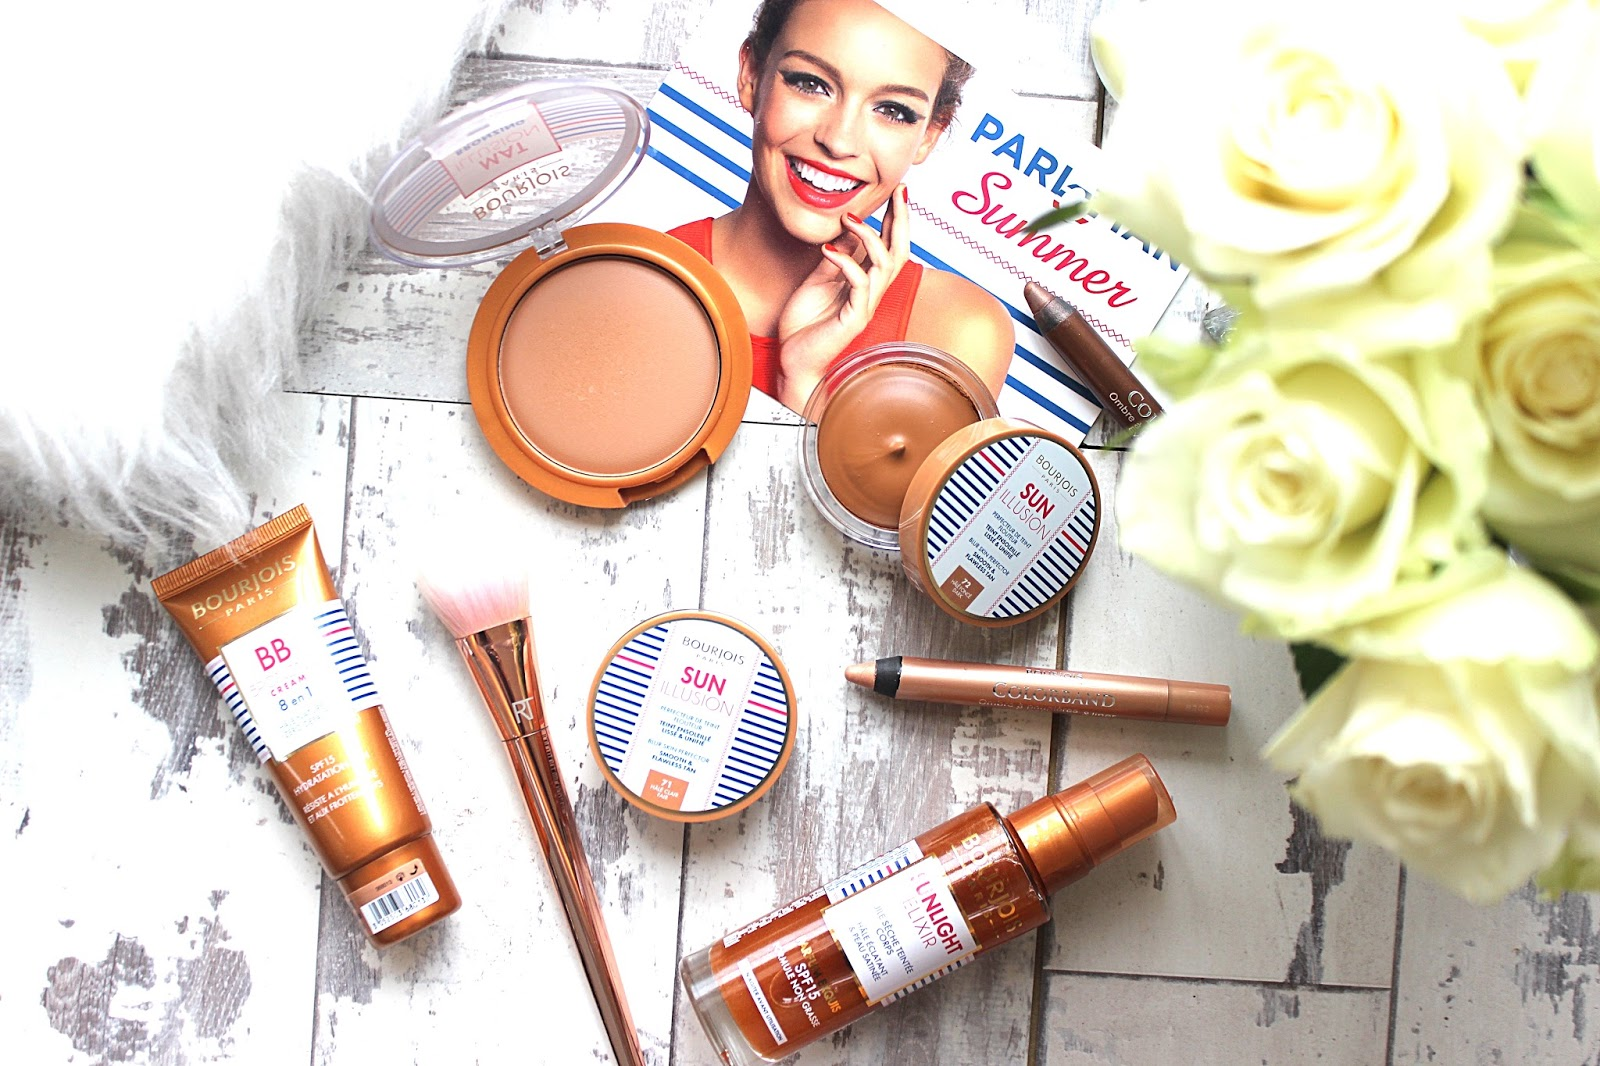 Bourjois Parisian Summer Collection